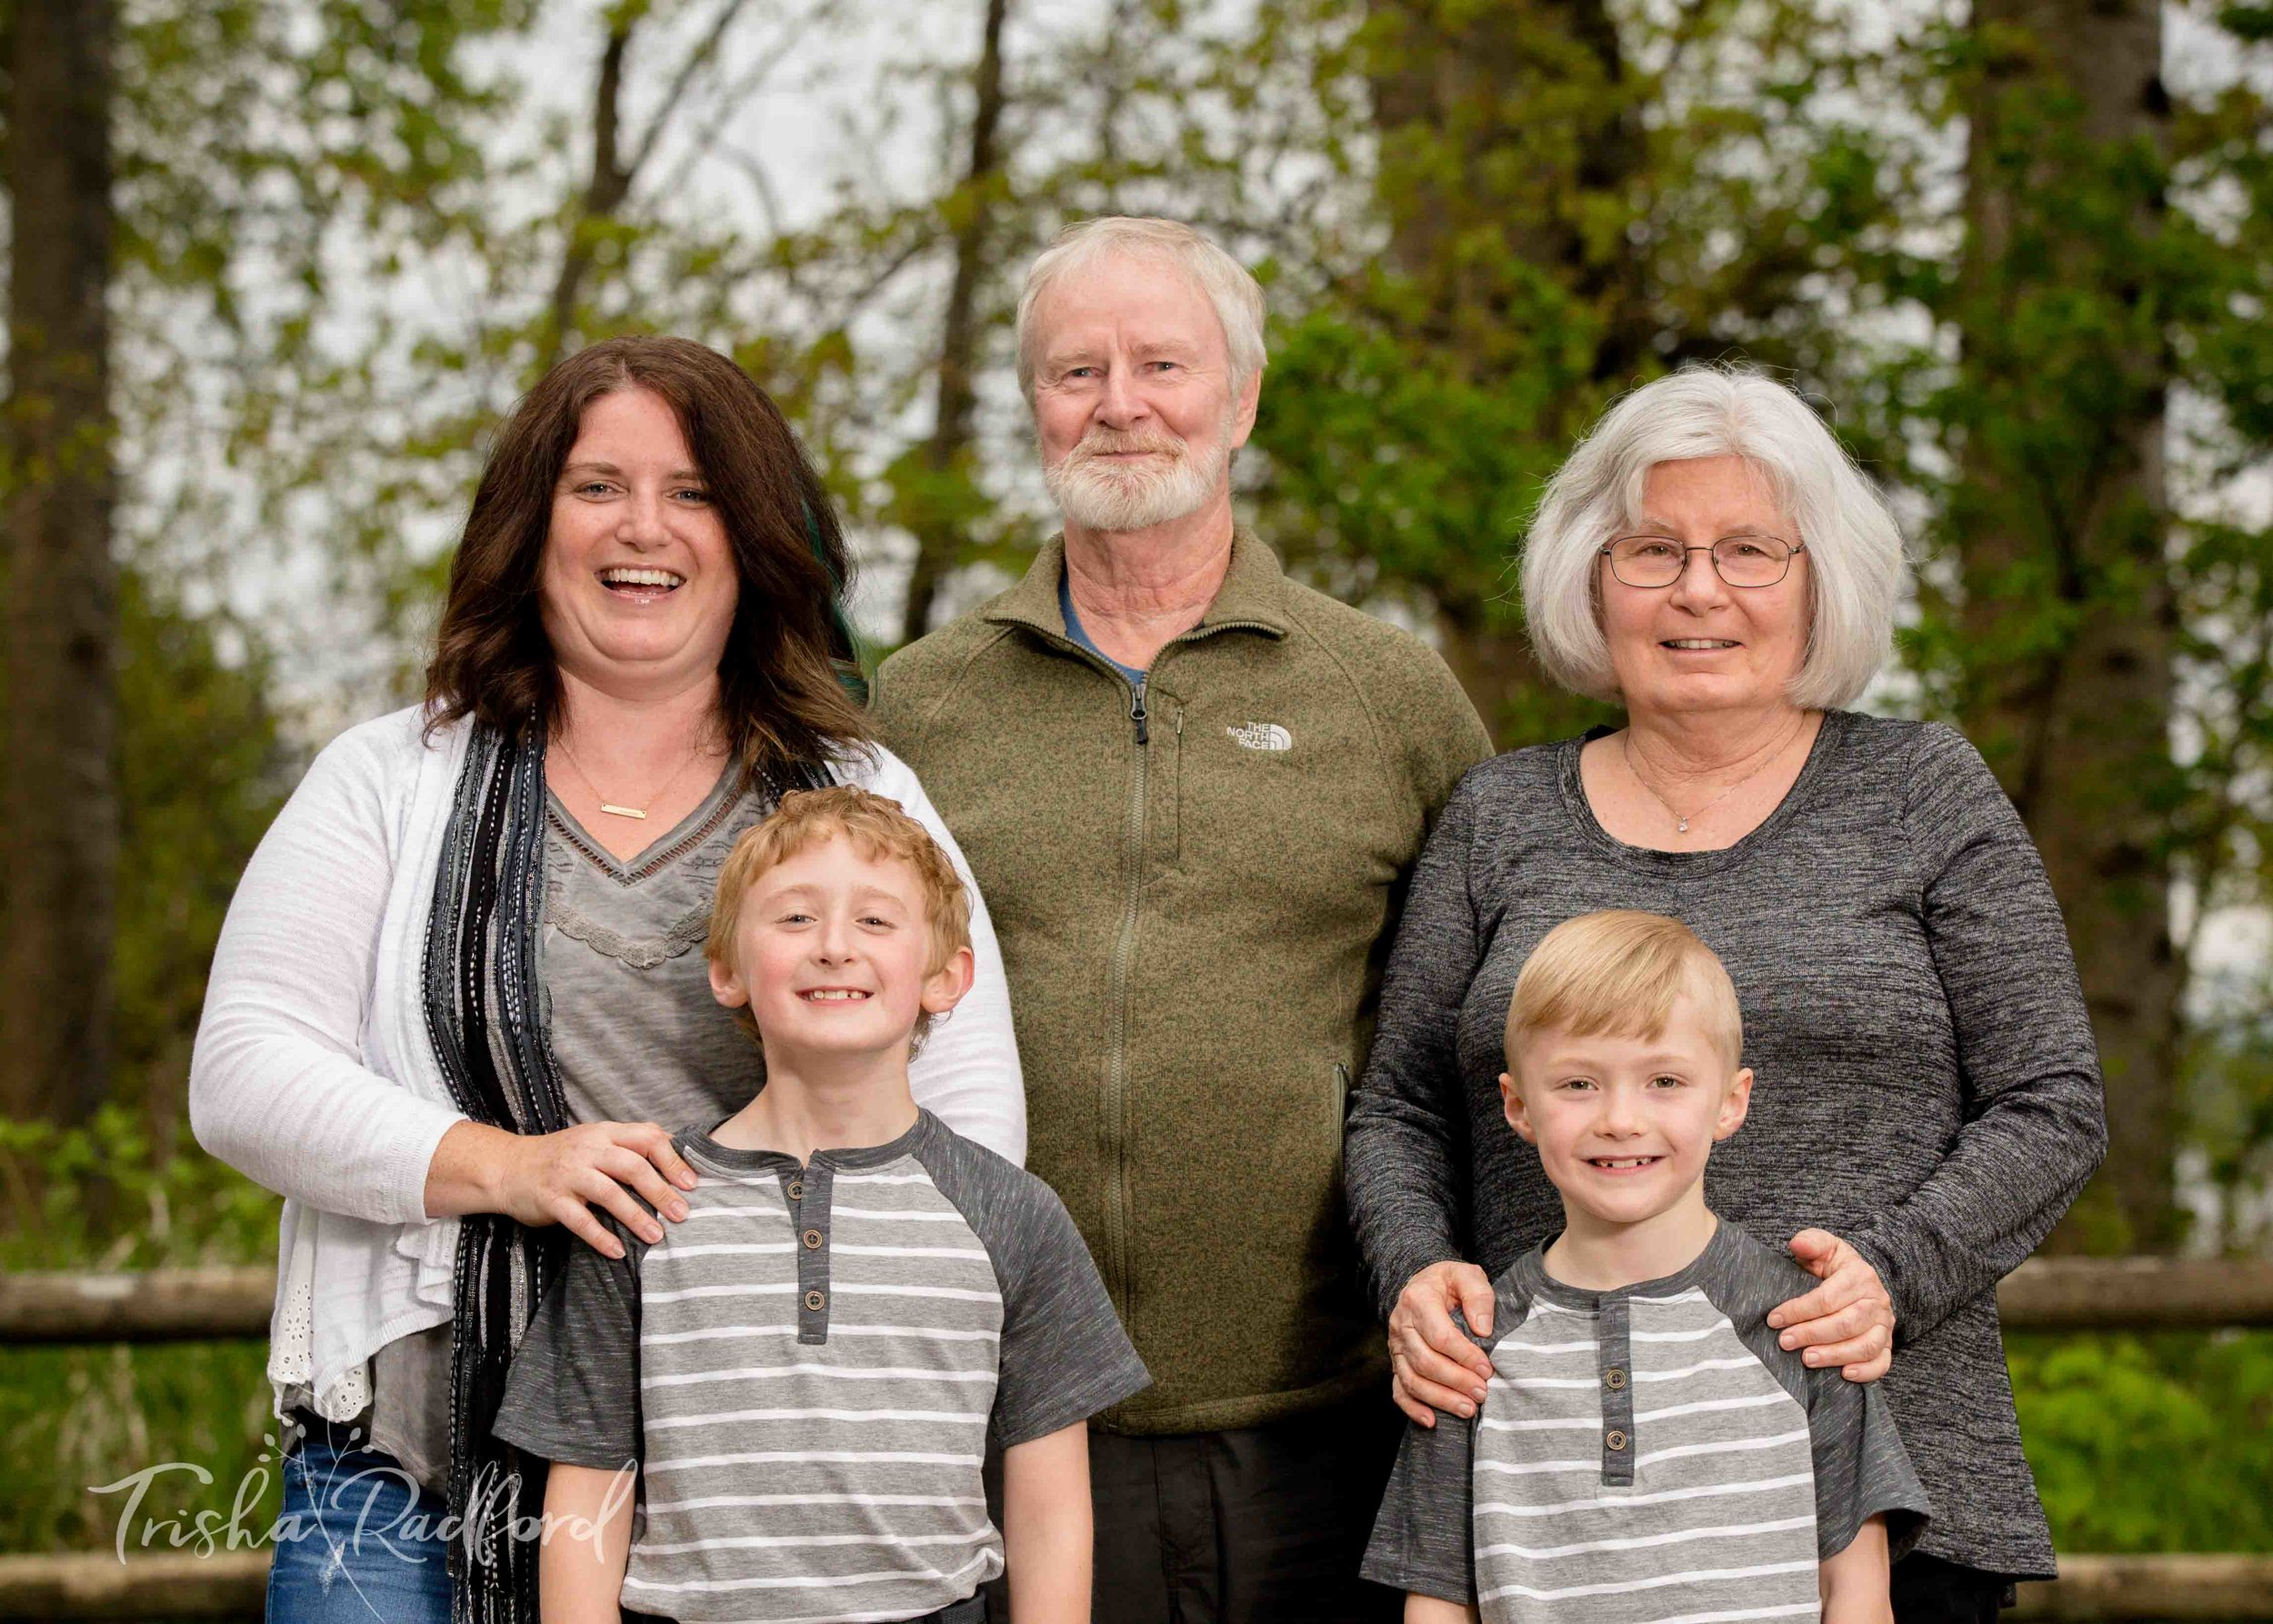 Snohomish County Family Photographer | Lundeen Park Lake Stevens, WA